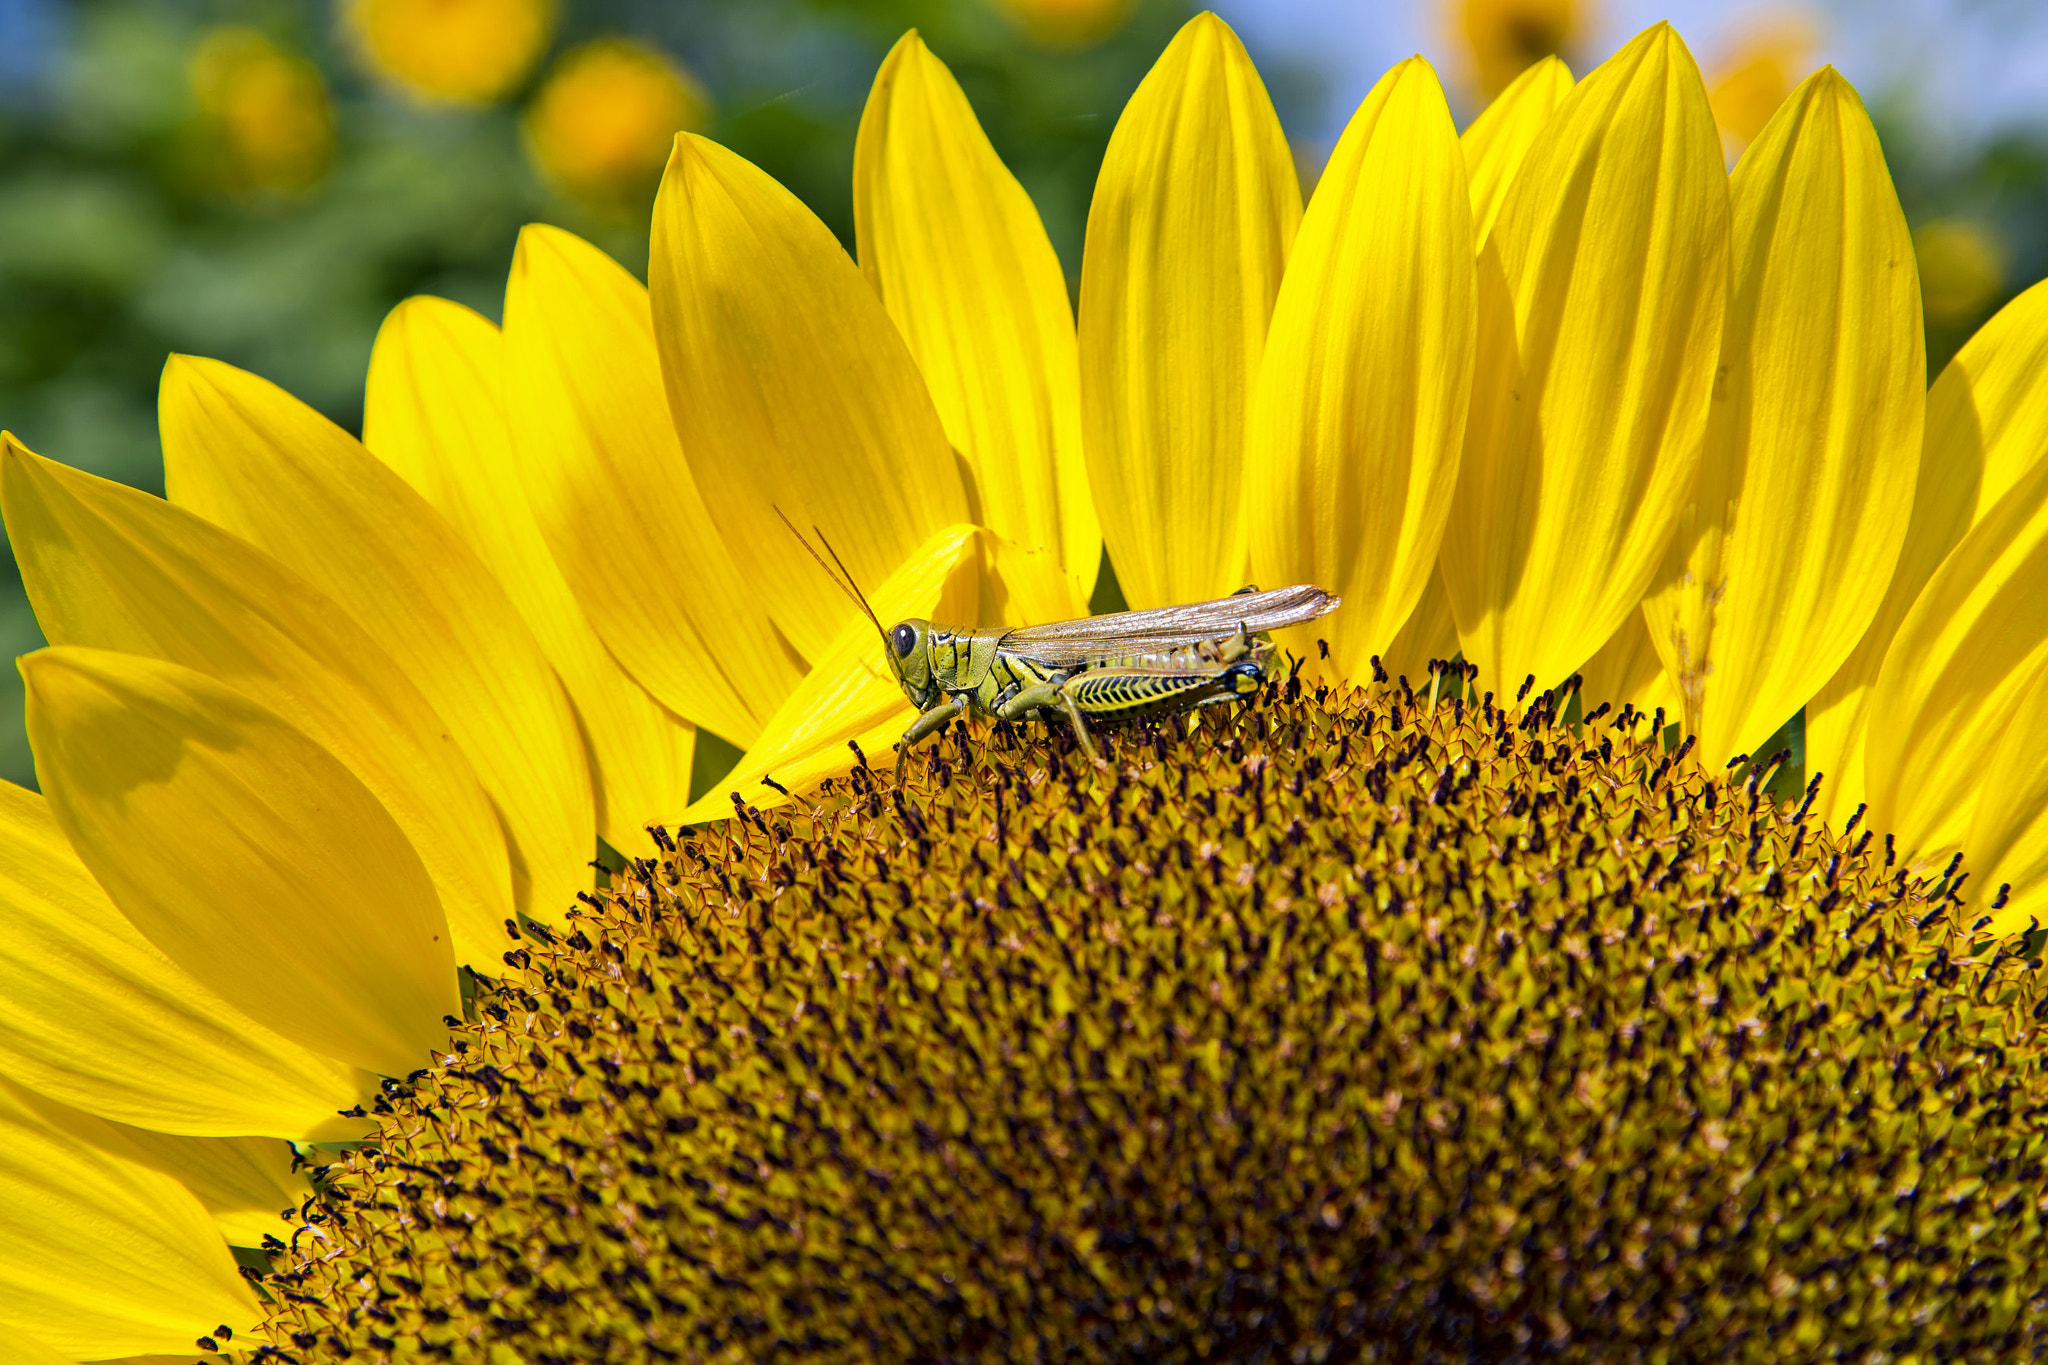 Photograph Grasshopper on Sunflower by Heather Conley on 500px